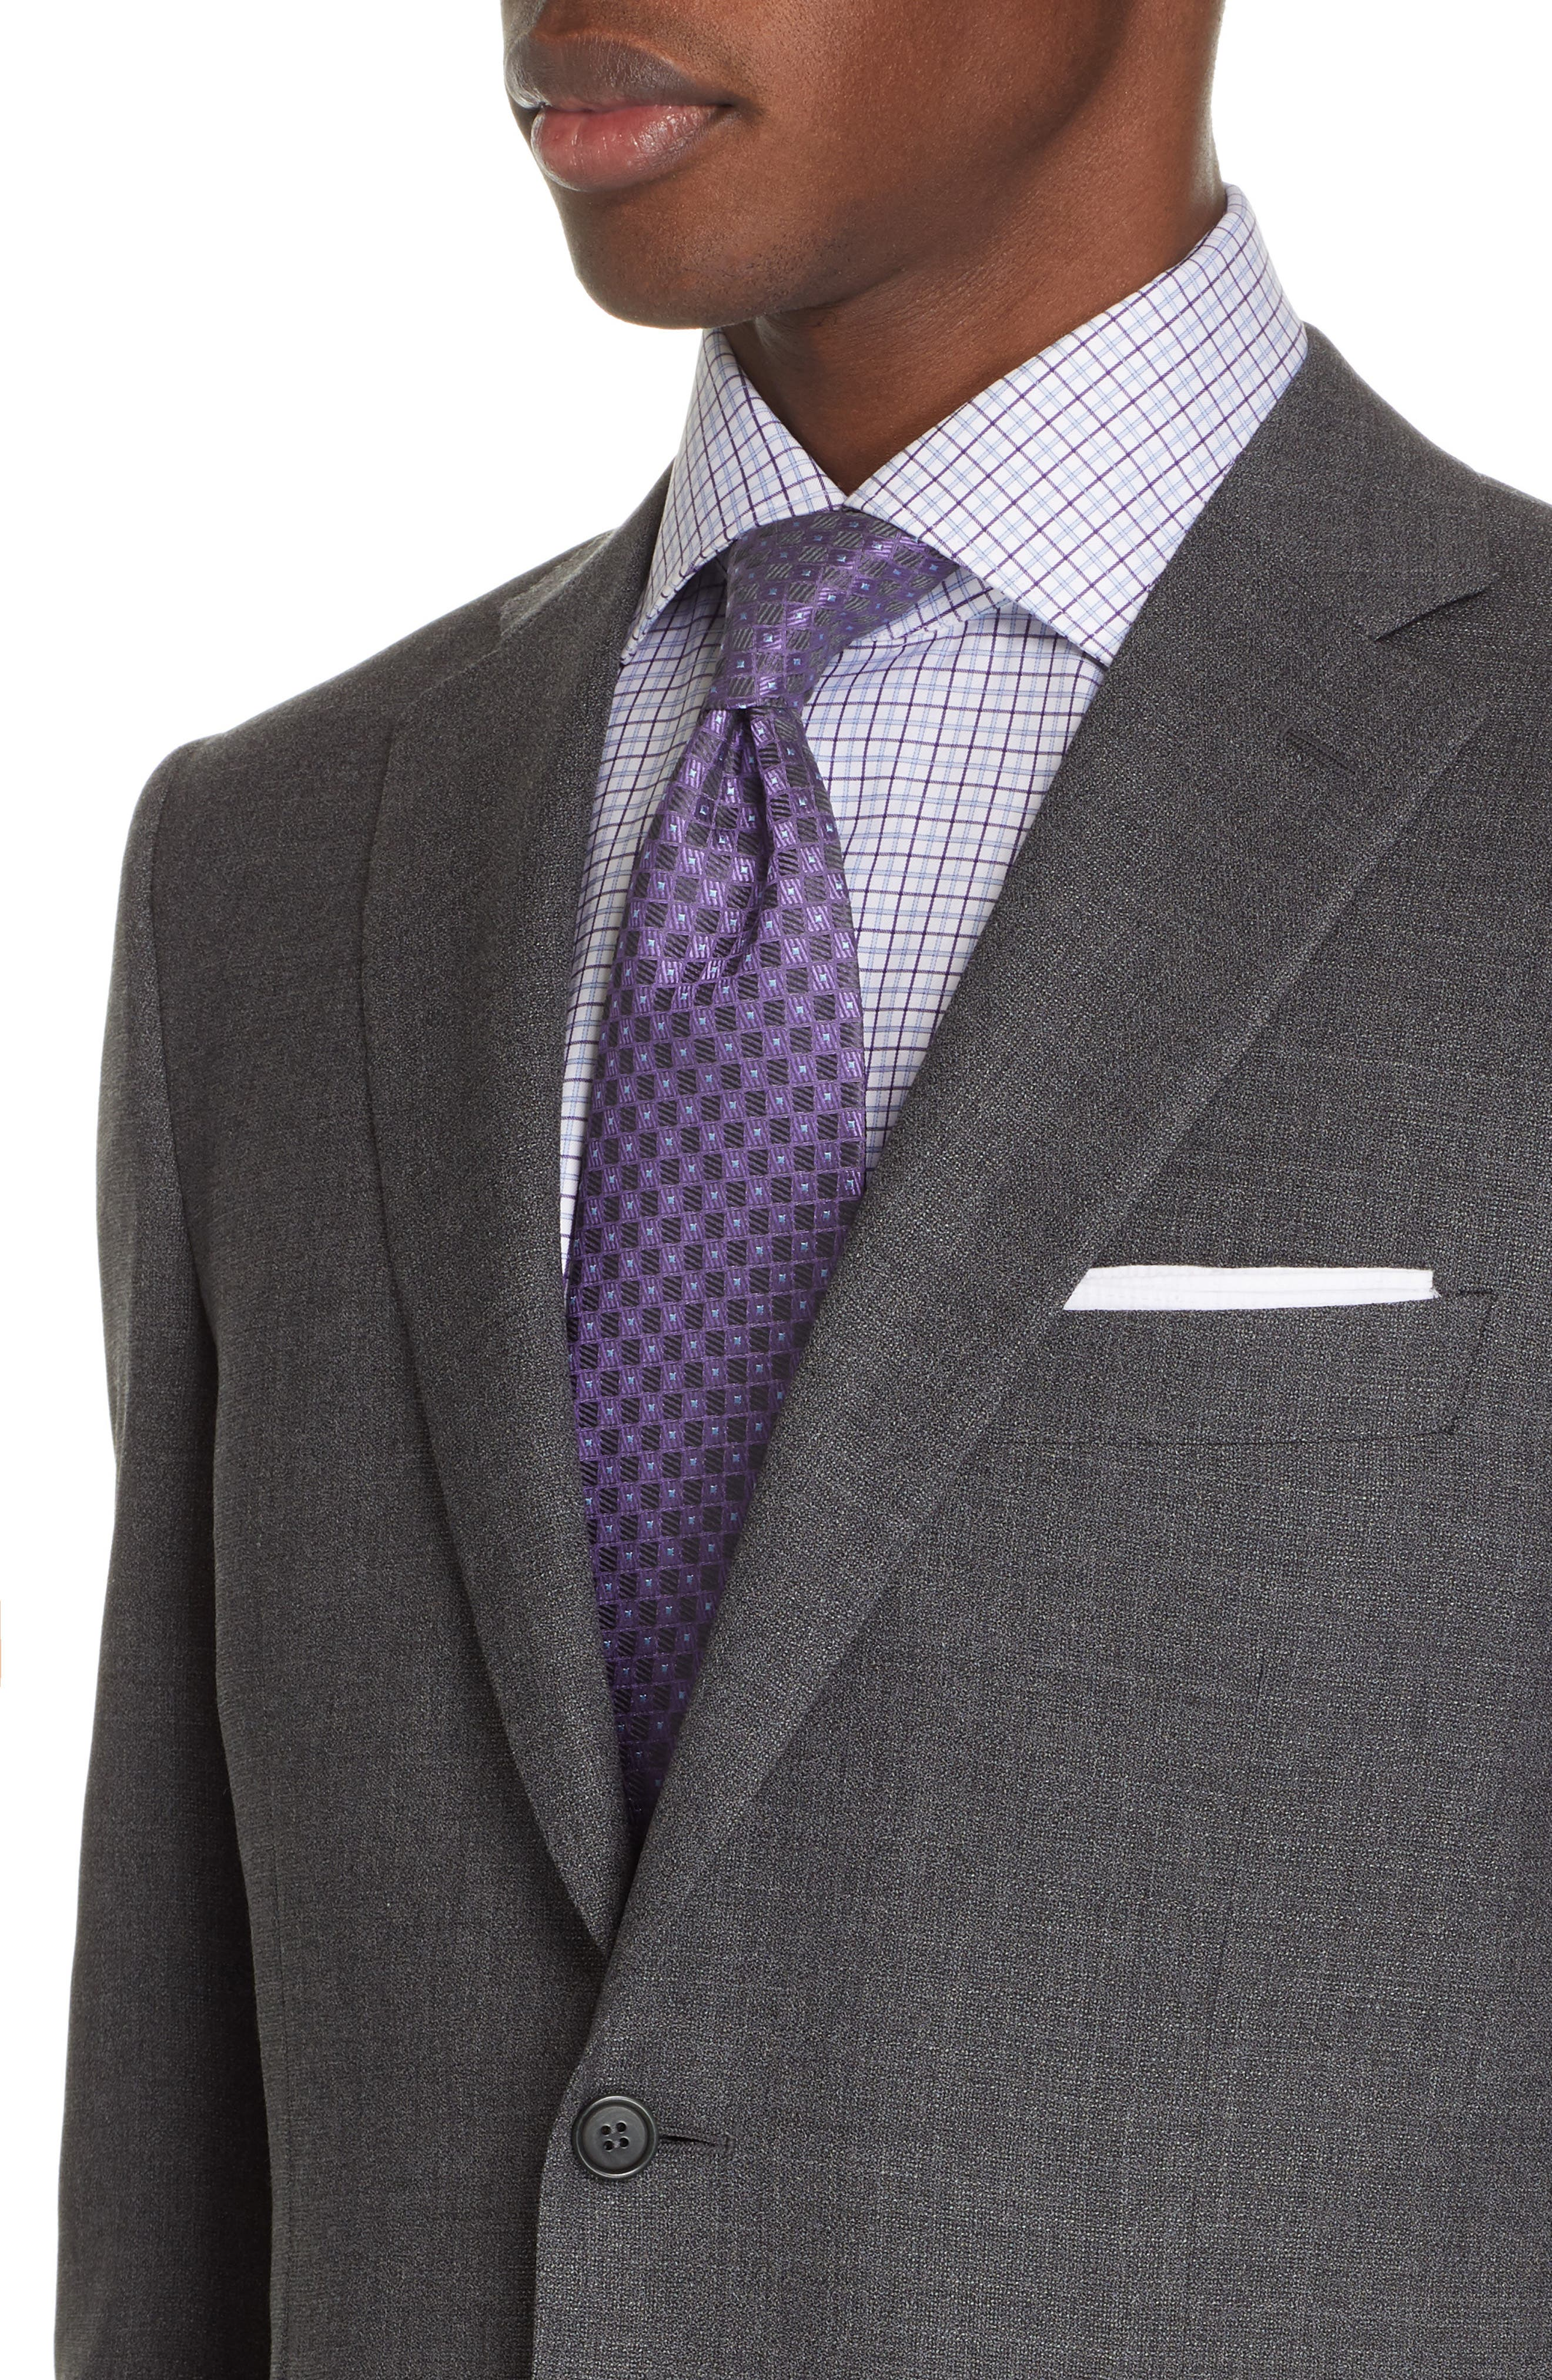 CANALI, Sienna Classic Fit Solid Wool Sport Coat, Alternate thumbnail 4, color, CHARCOAL